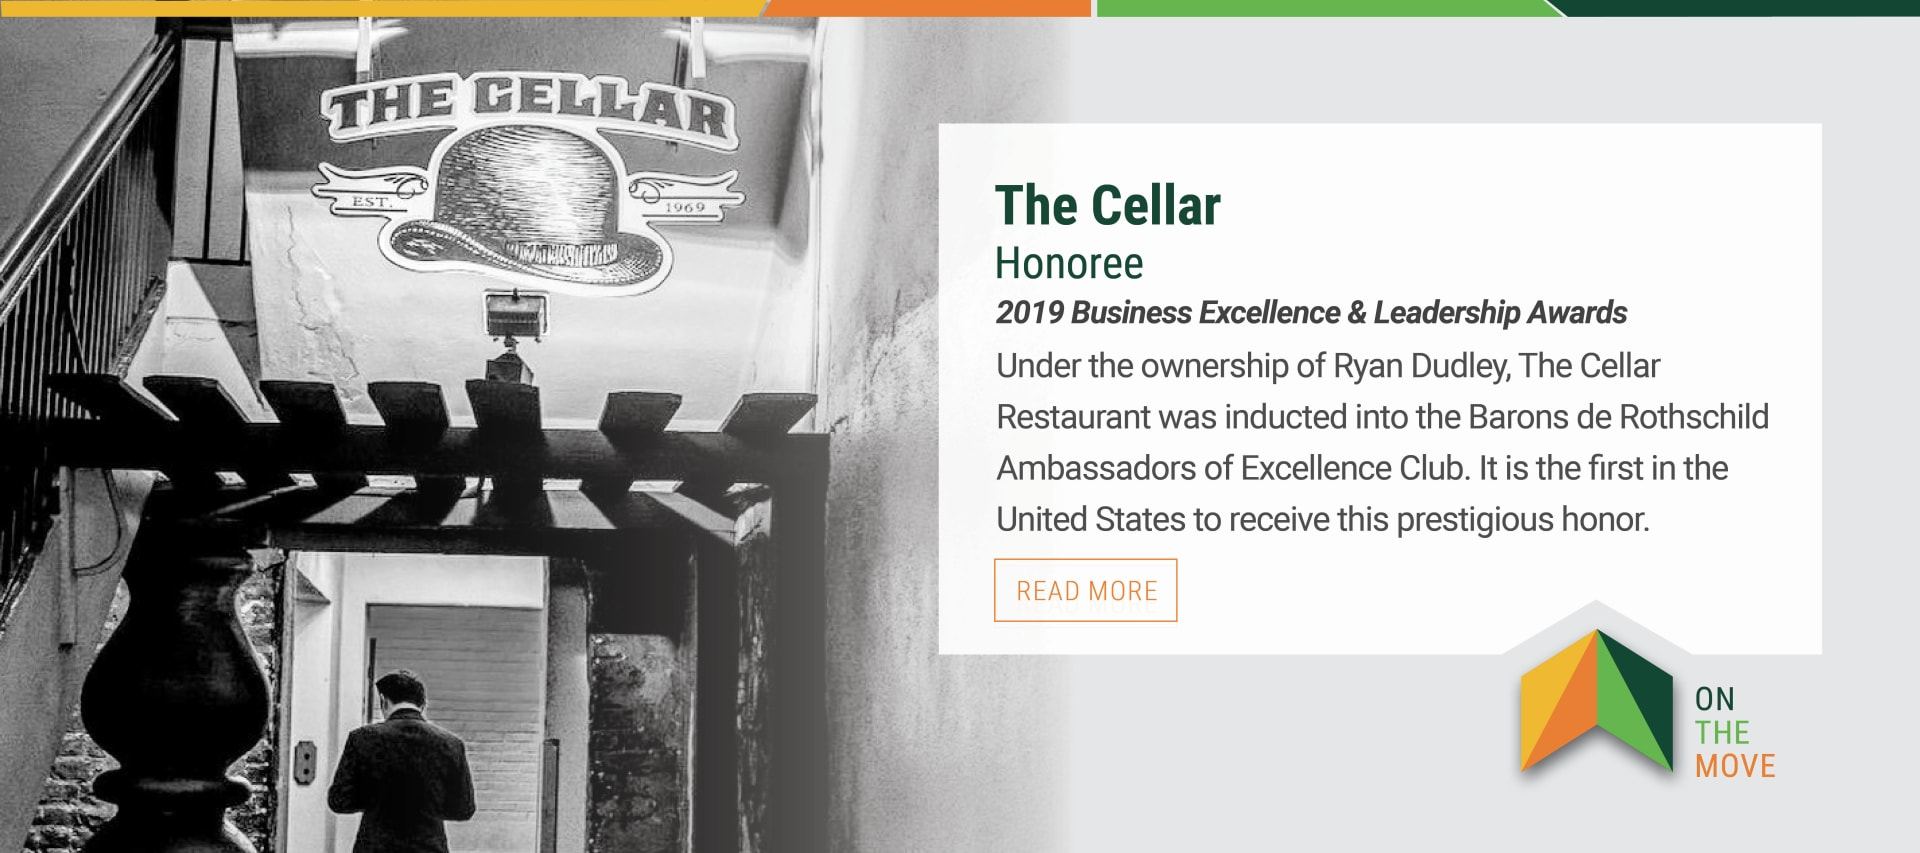 The-Cellar-Restaurant-w1920.jpg